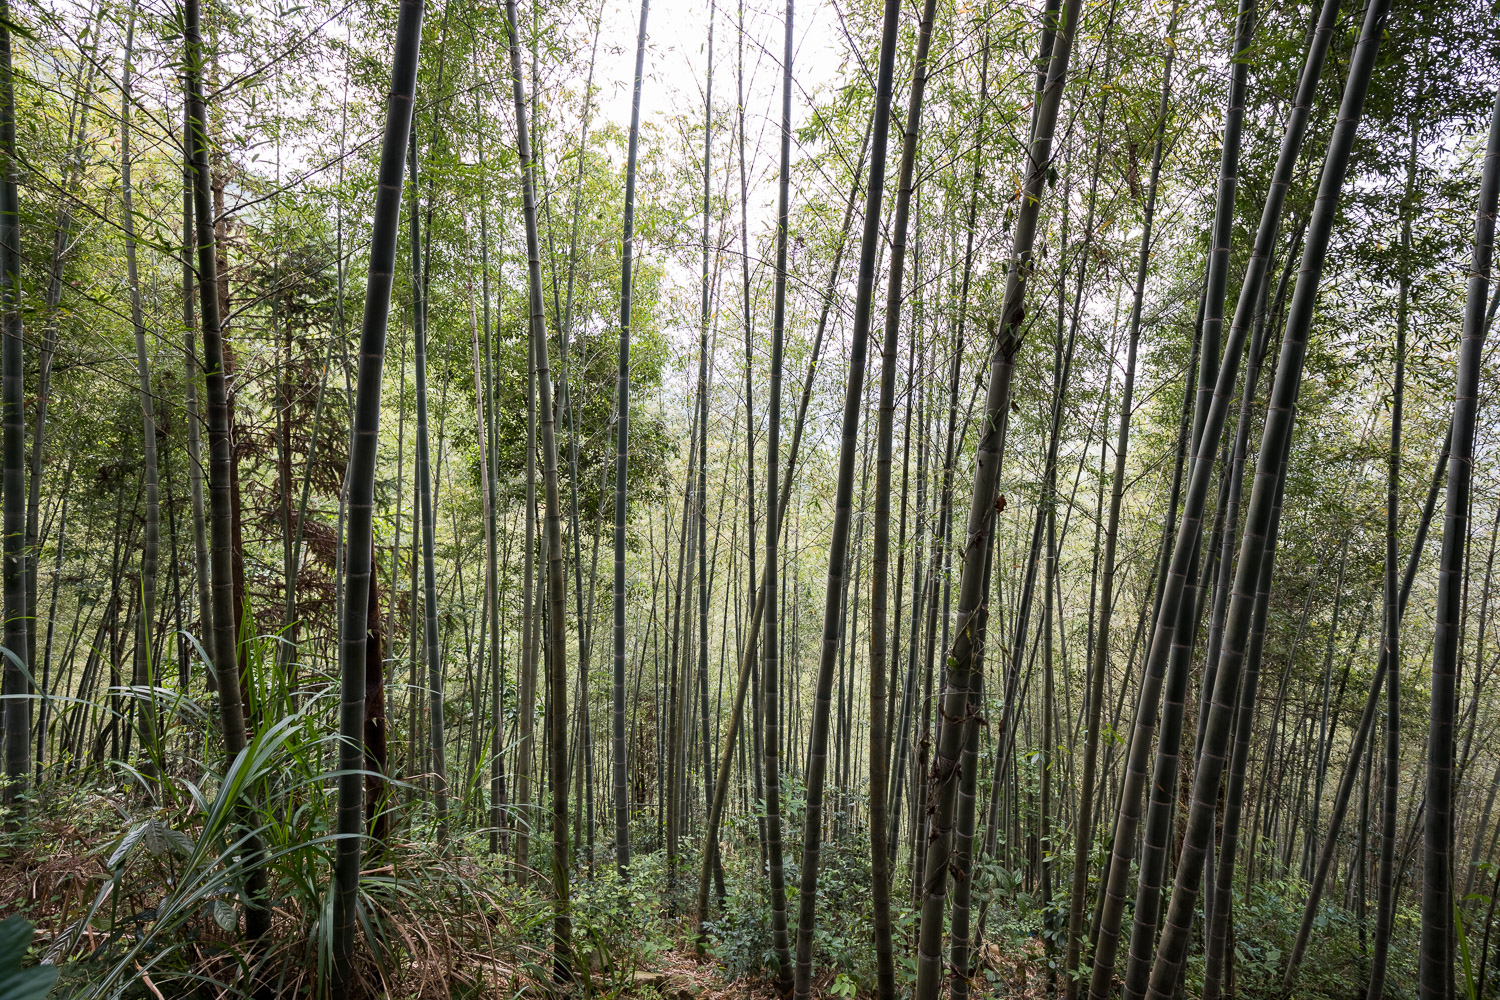 Picture of bamboo forest.